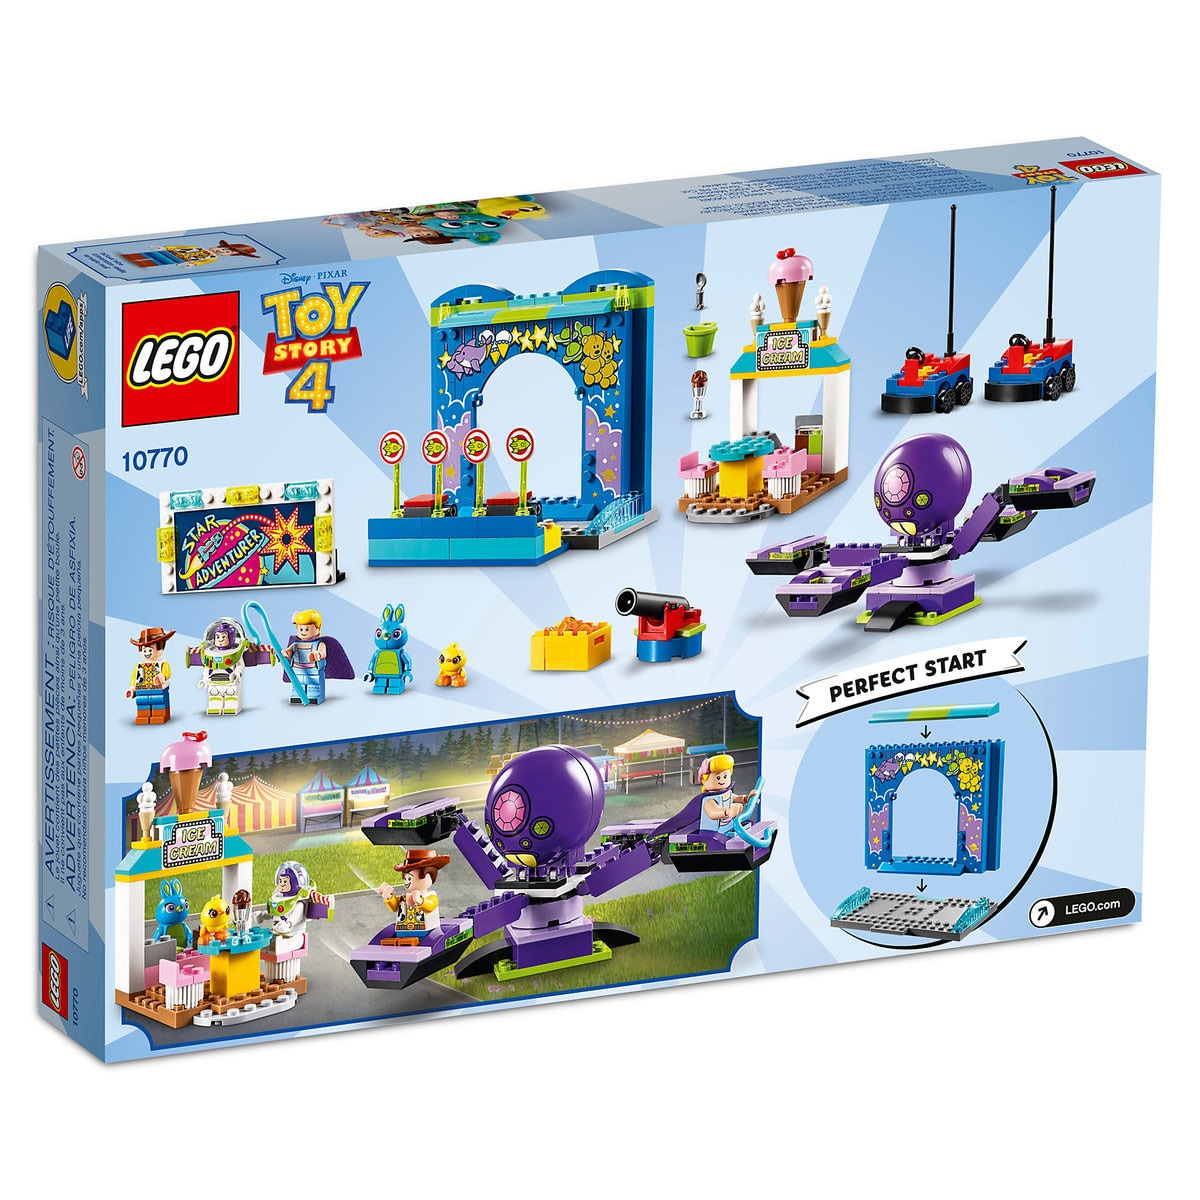 Buzz Woody S Carnival Mania Play Set By Lego Toy Story 4